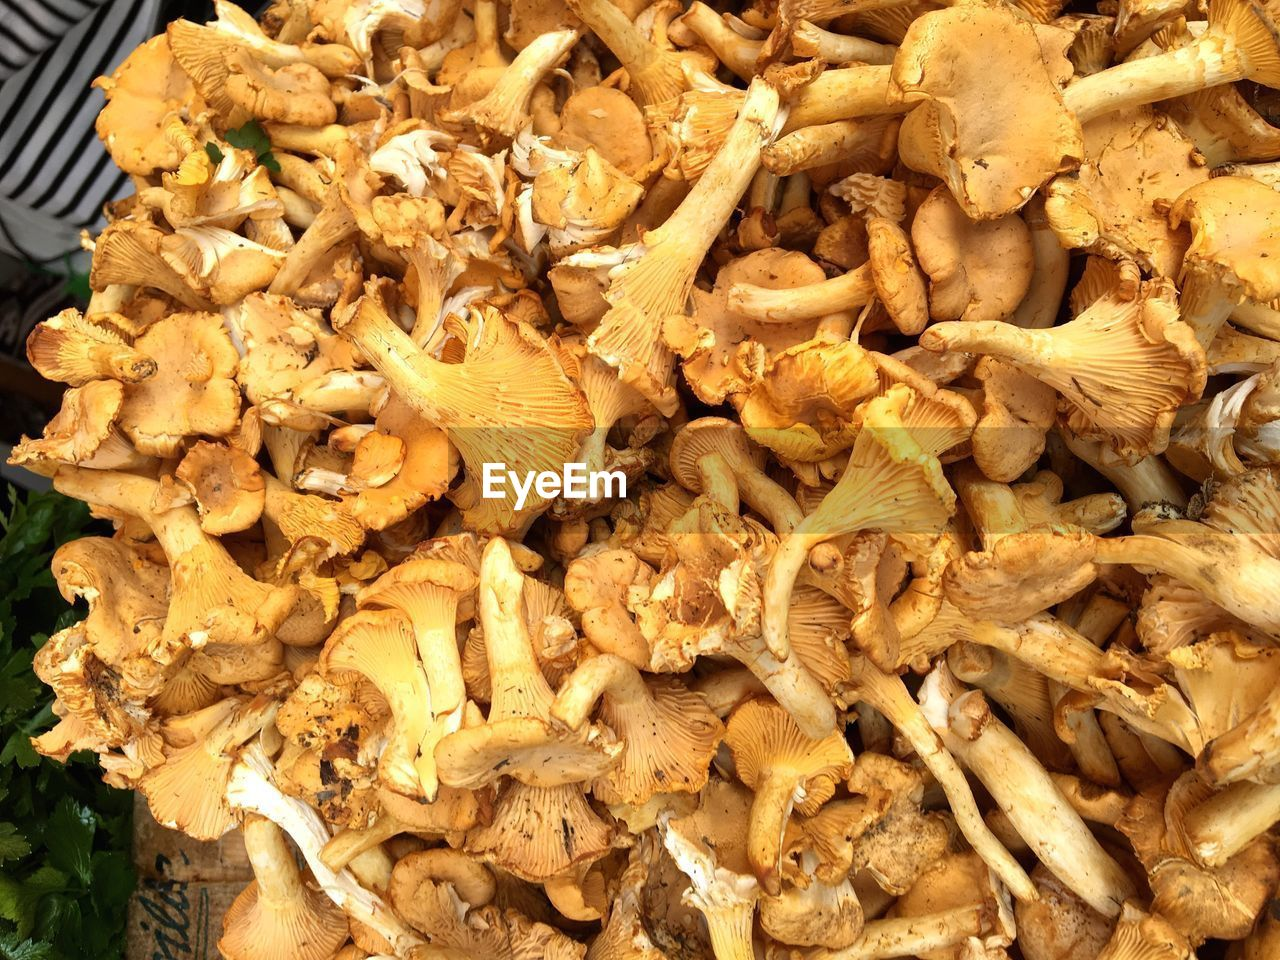 food, food and drink, freshness, still life, vegetable, mushroom, wellbeing, healthy eating, no people, close-up, edible mushroom, large group of objects, high angle view, abundance, fungus, indoors, raw food, snack, retail, market